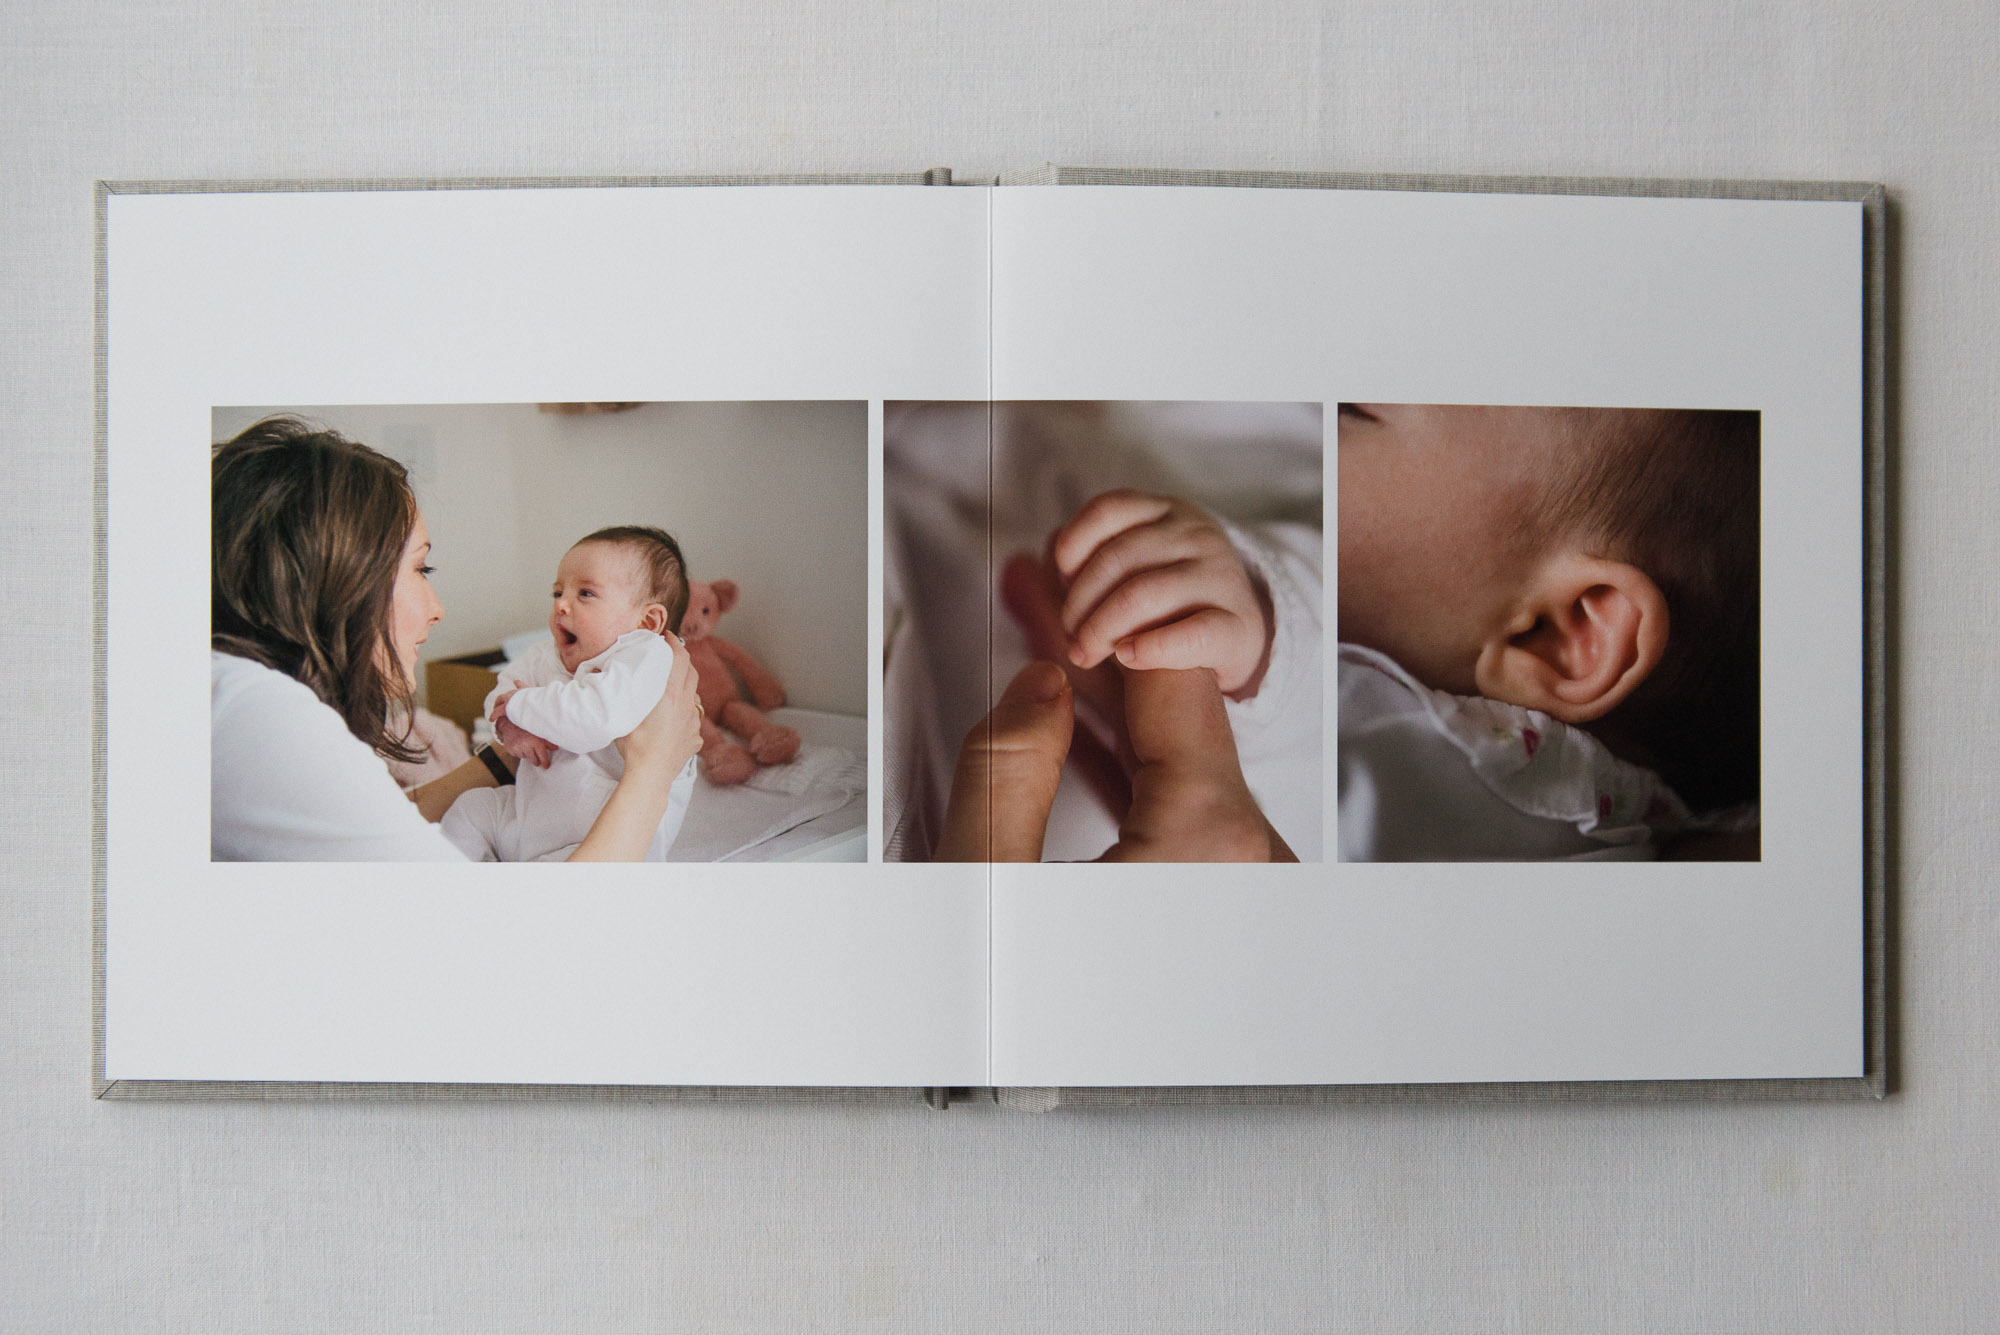 Albums open perfectly flat - For gorgeous layouts. Available in sizes up to 12in x 12in.